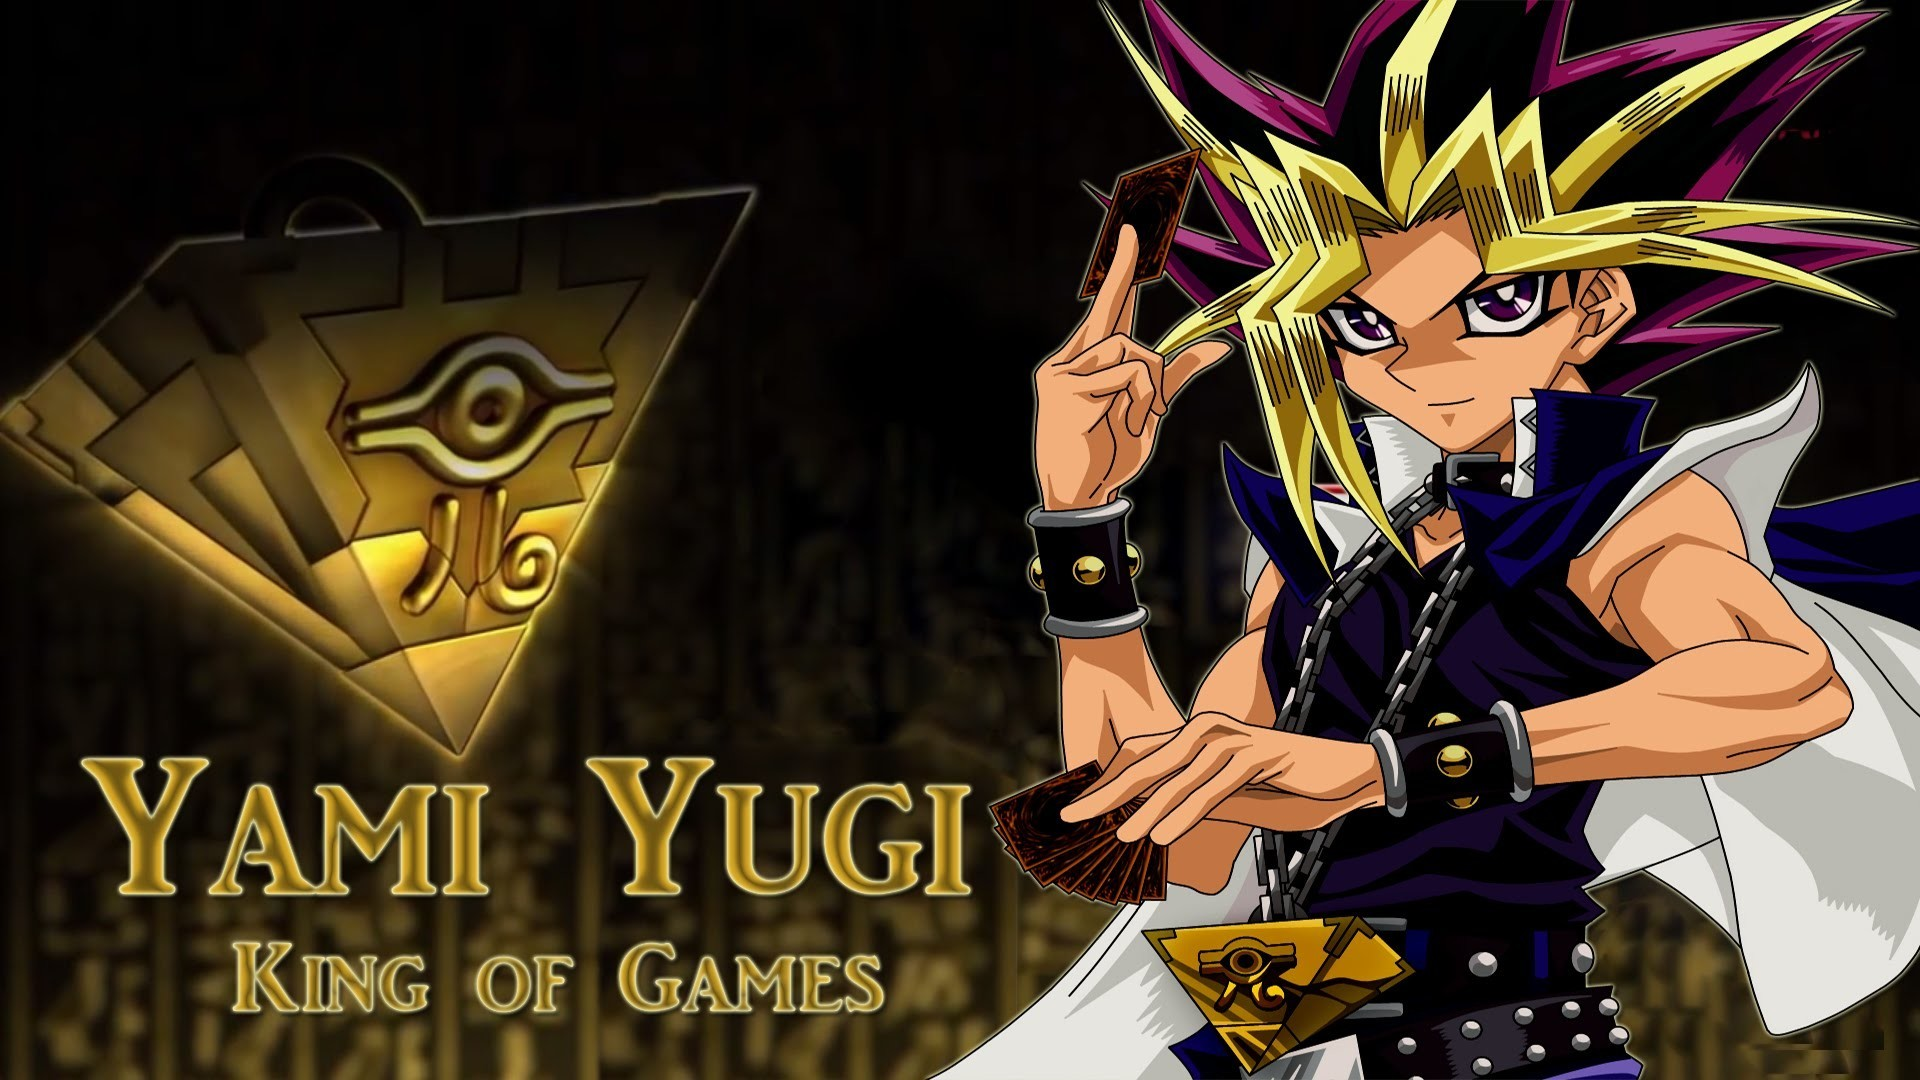 Res: 1920x1080, Yugioh Exodia Images HD Wallpapers